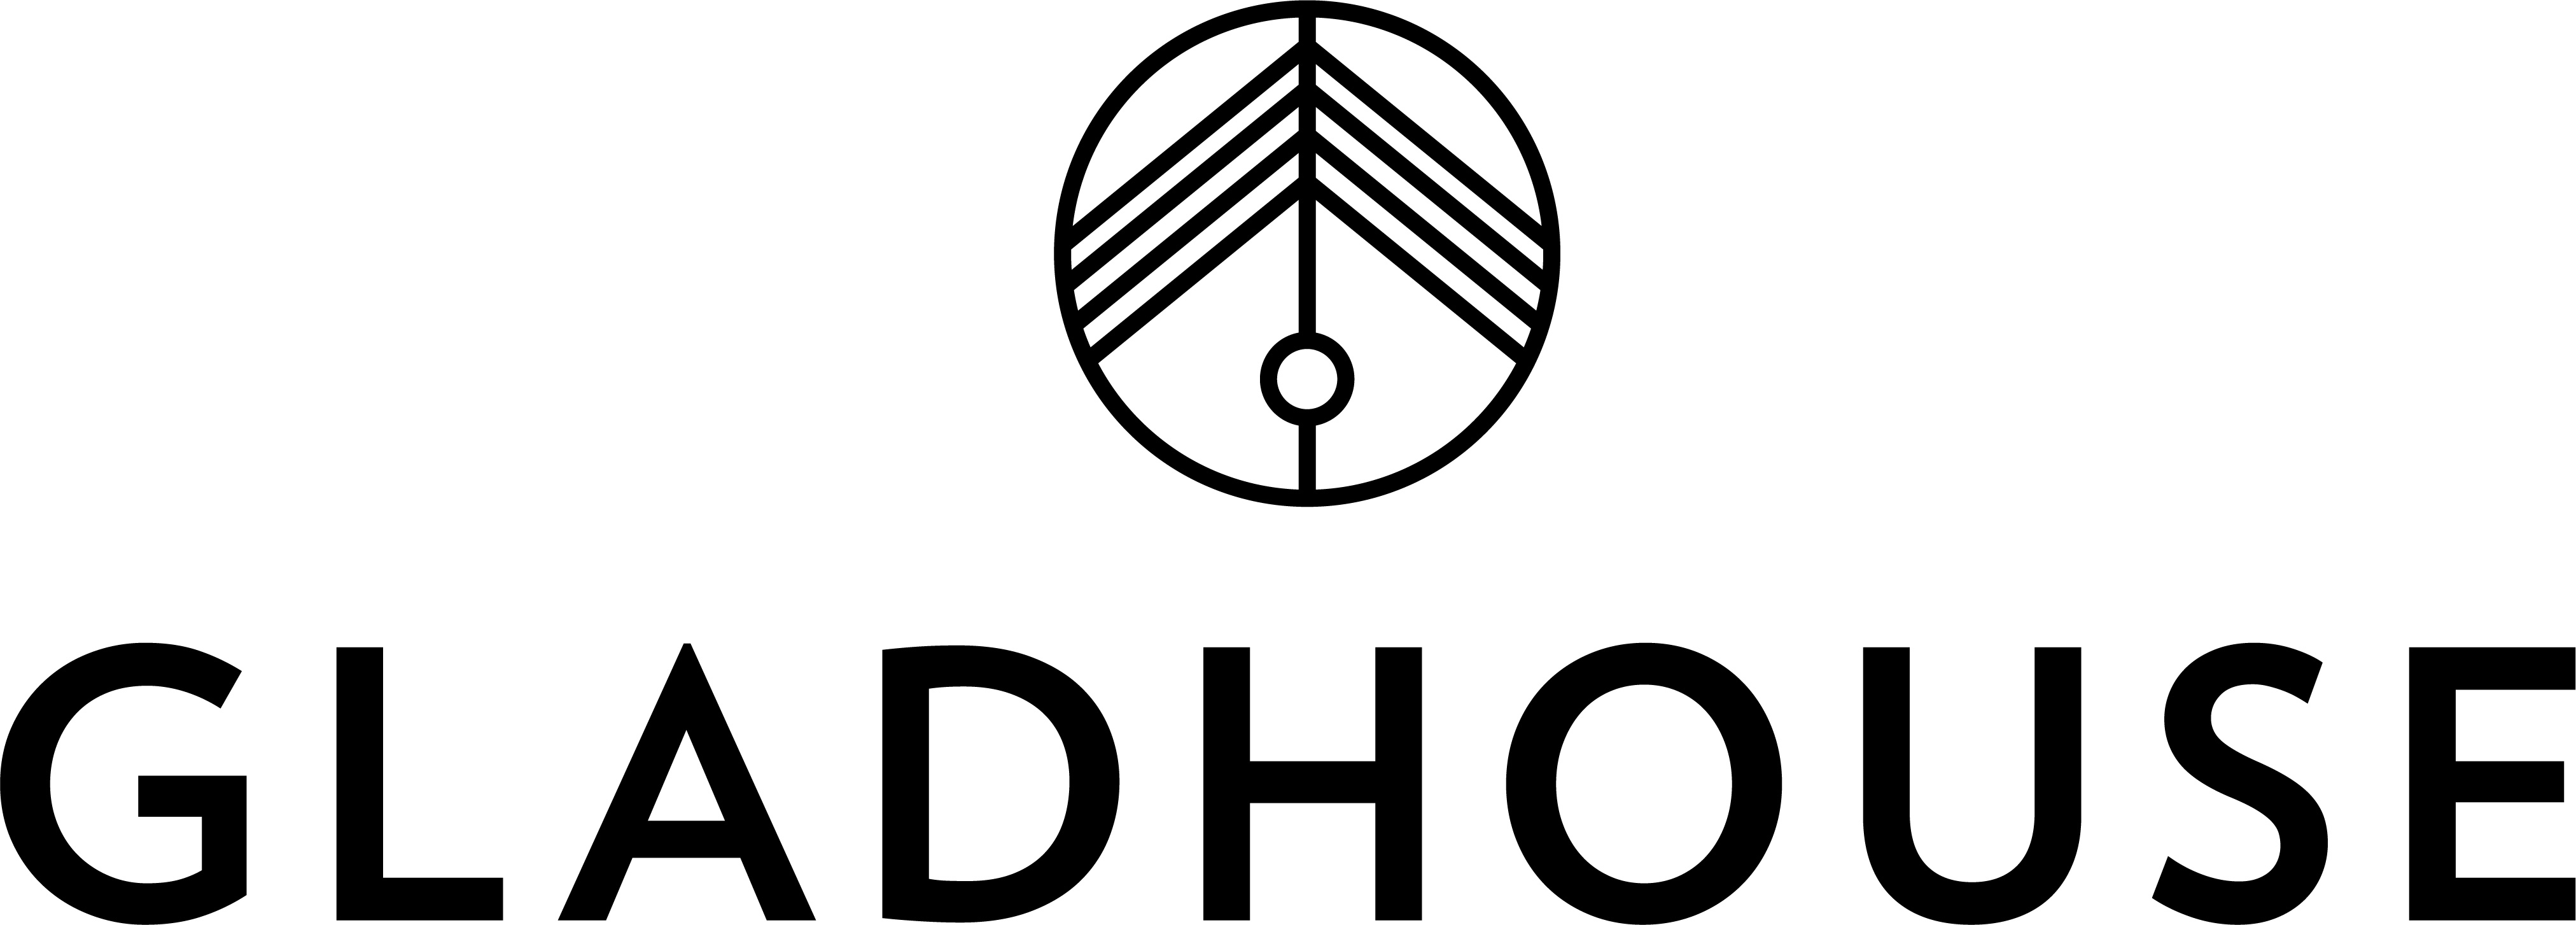 Gladhouse LOGO